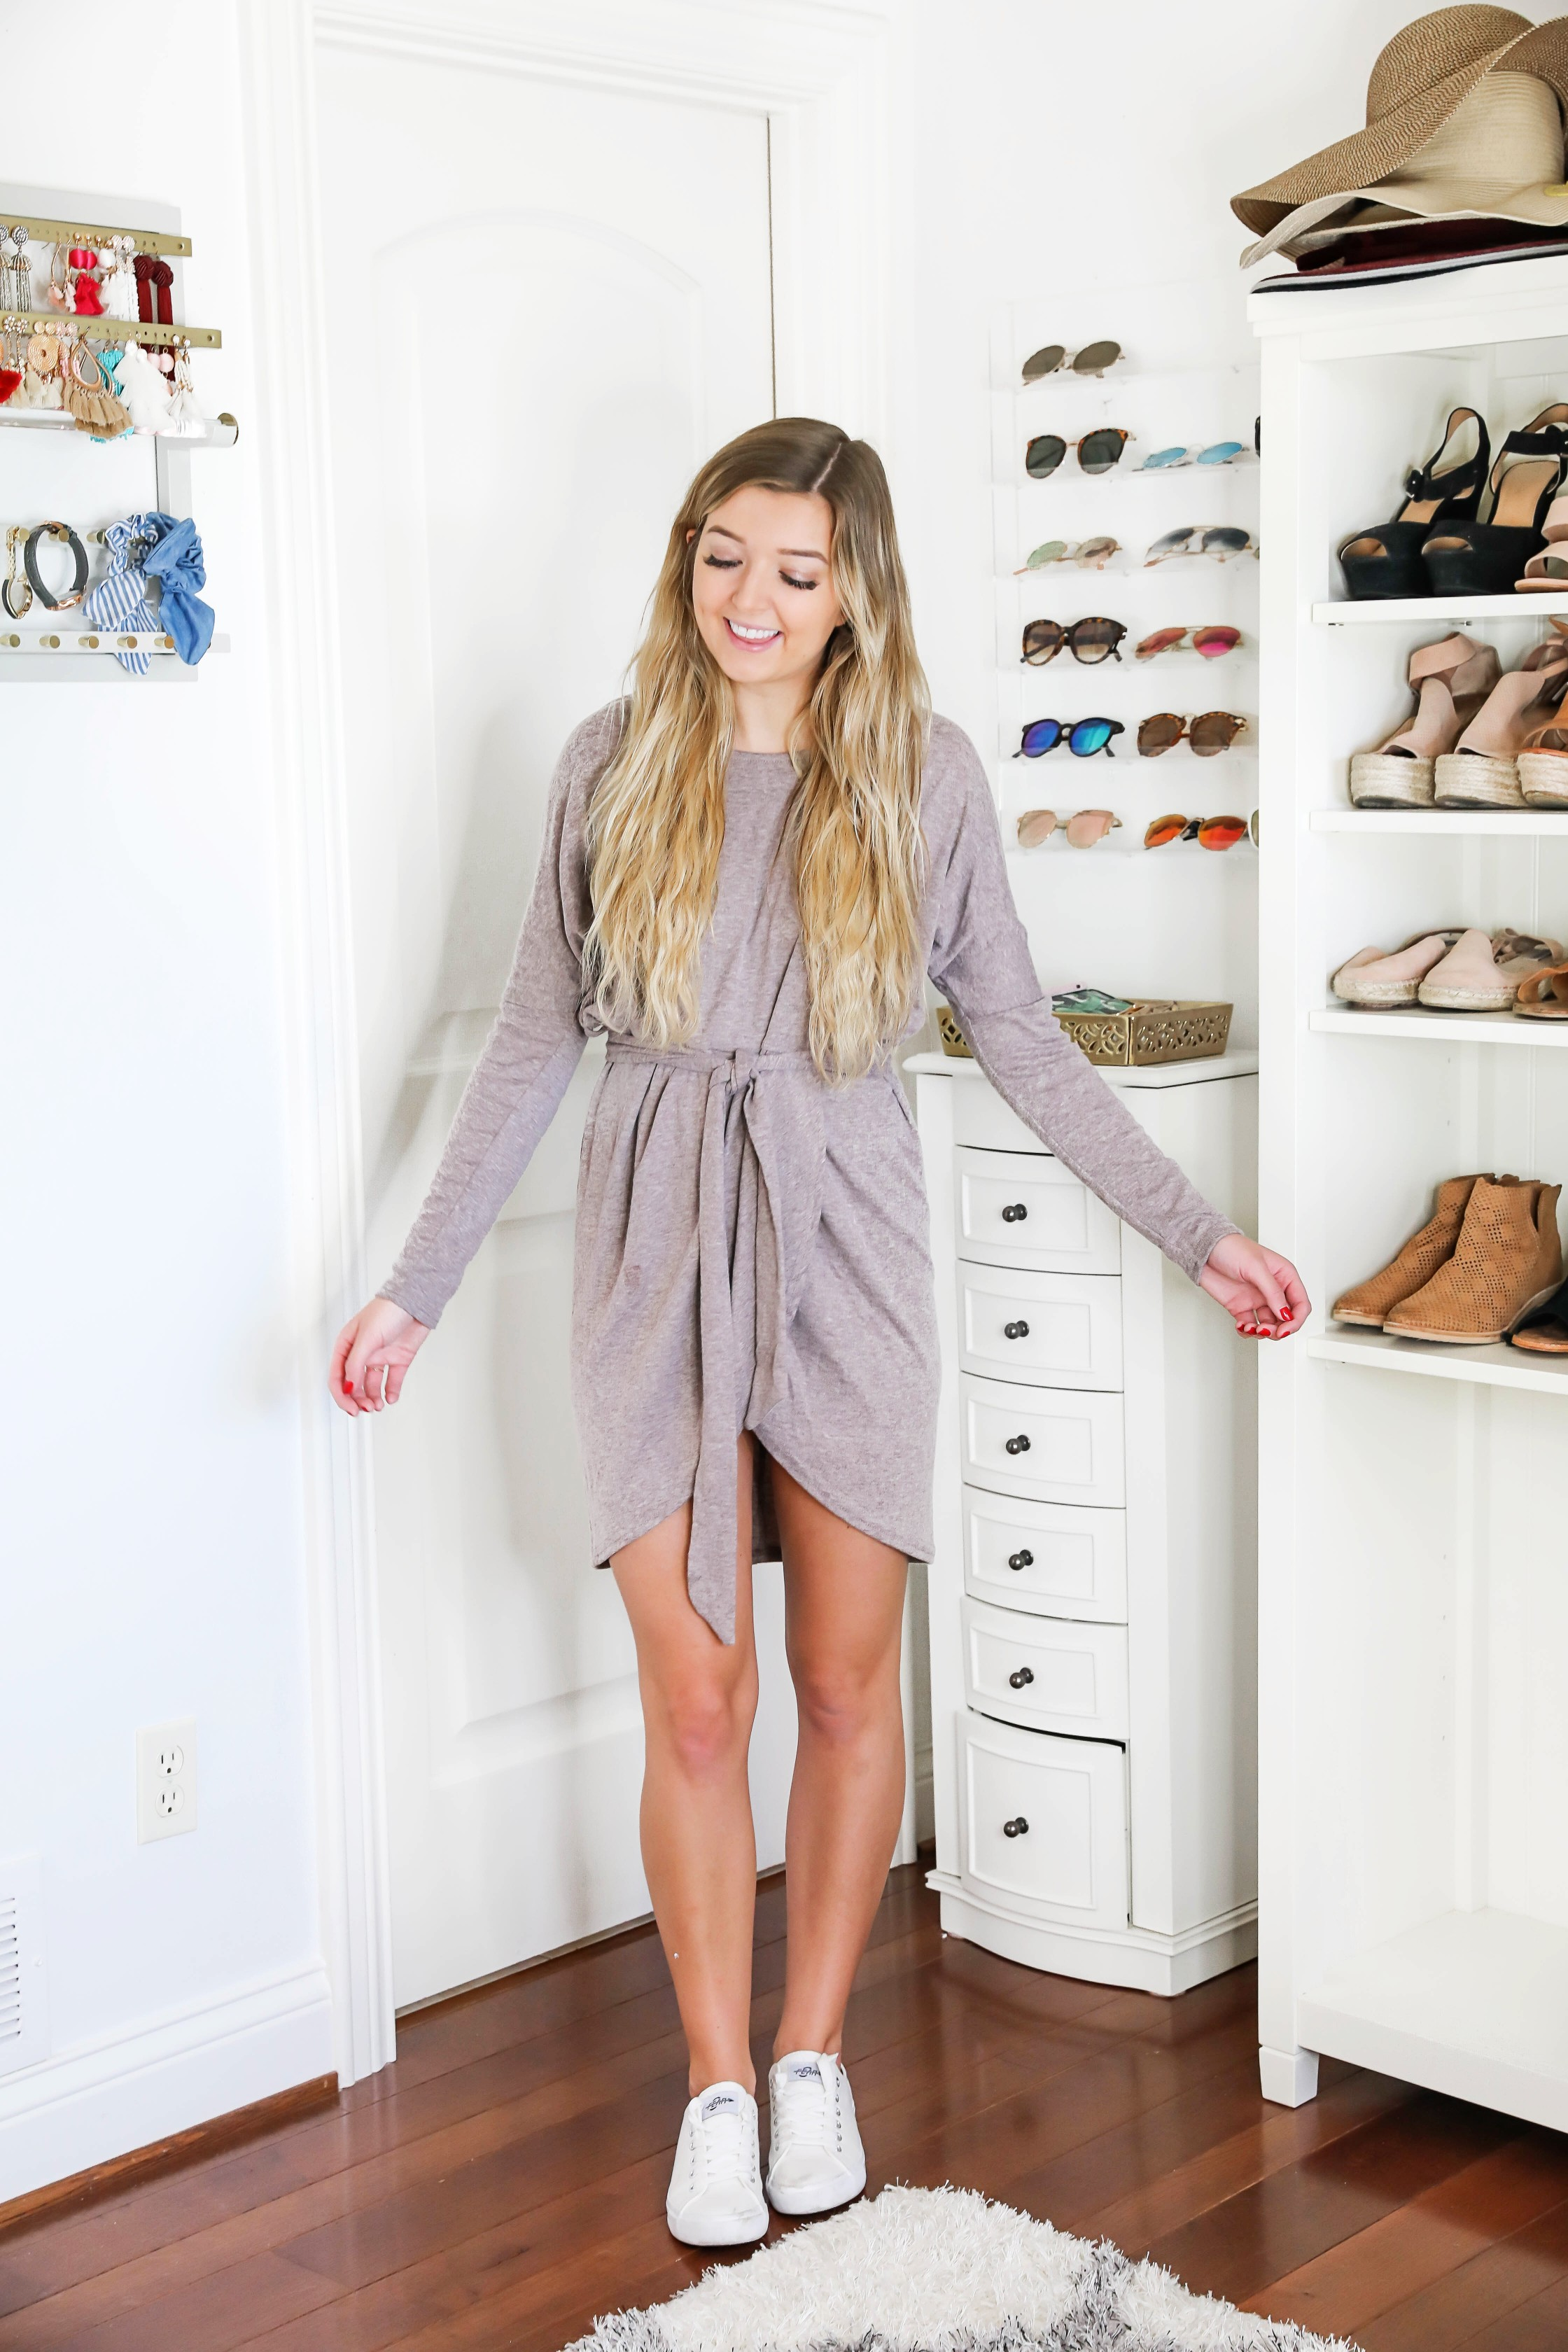 Back to school clothing under $30! A HUGE haul from Amazon fashion and other stores! Tons of fall clothing ideas and fall outfits put together! See the haul and get details on daily dose of charm by lauren lindmark